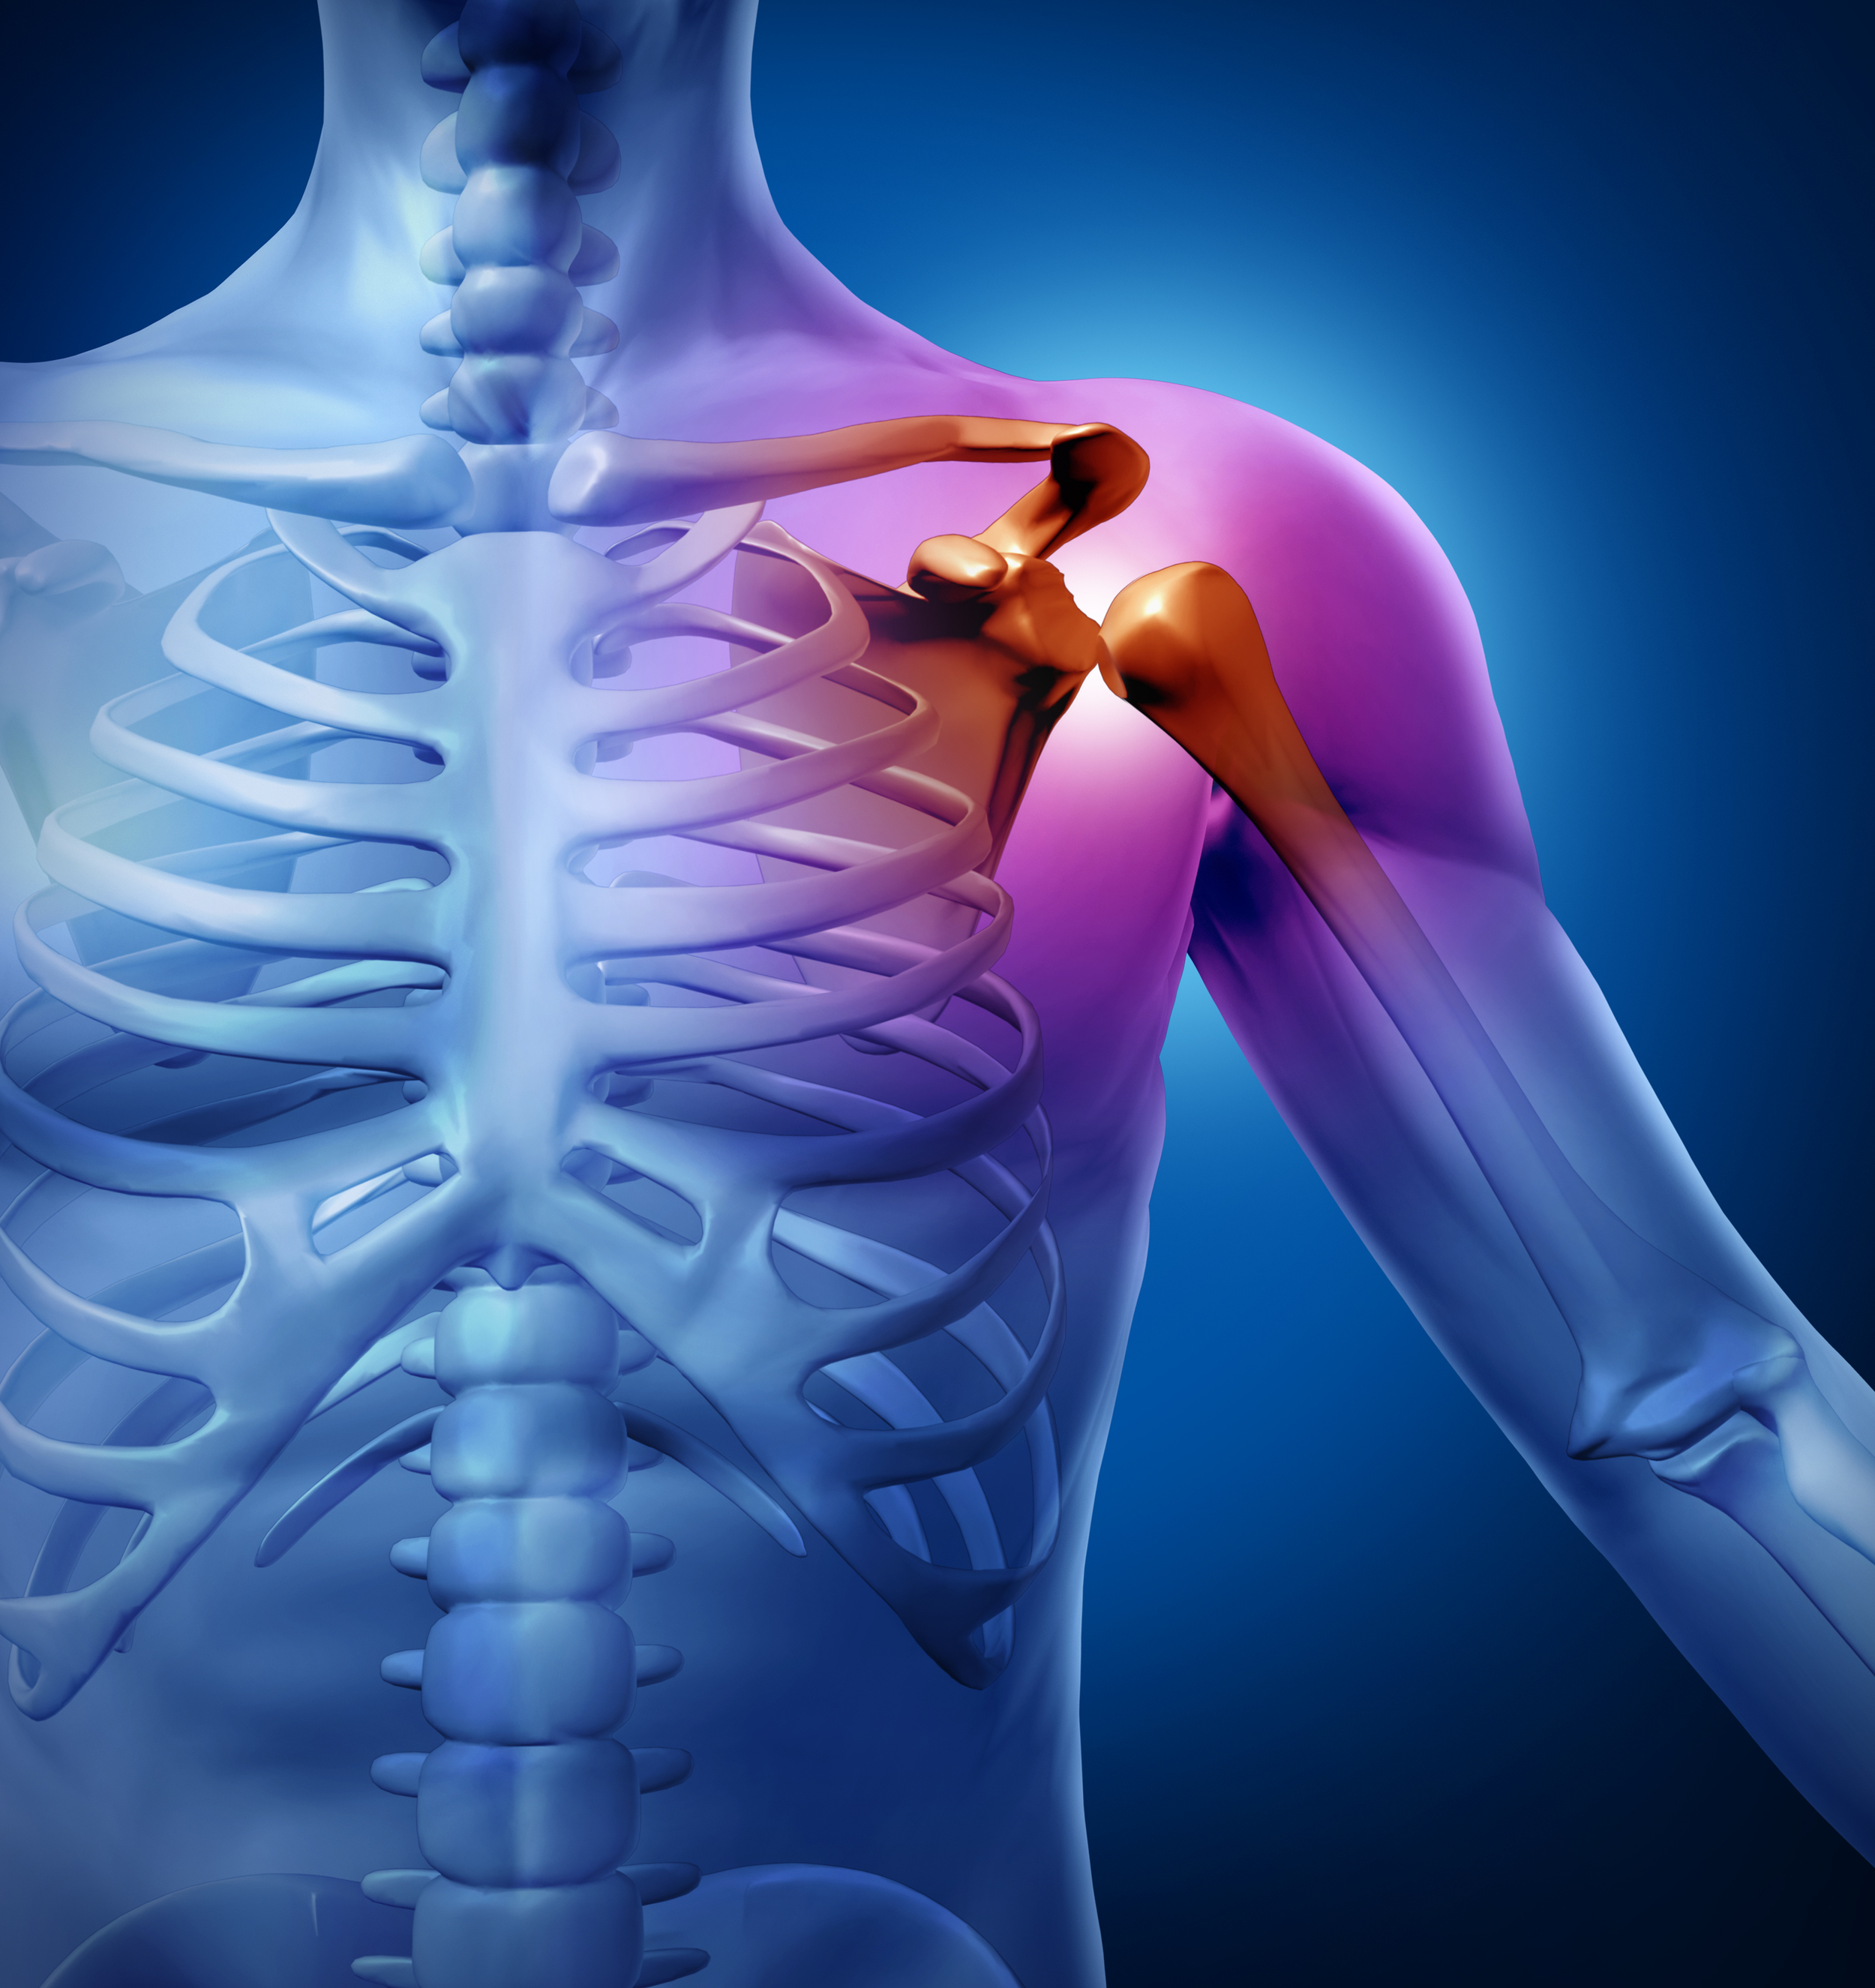 Shoulder disorders are common with overhead working and cause frequent sickness absence